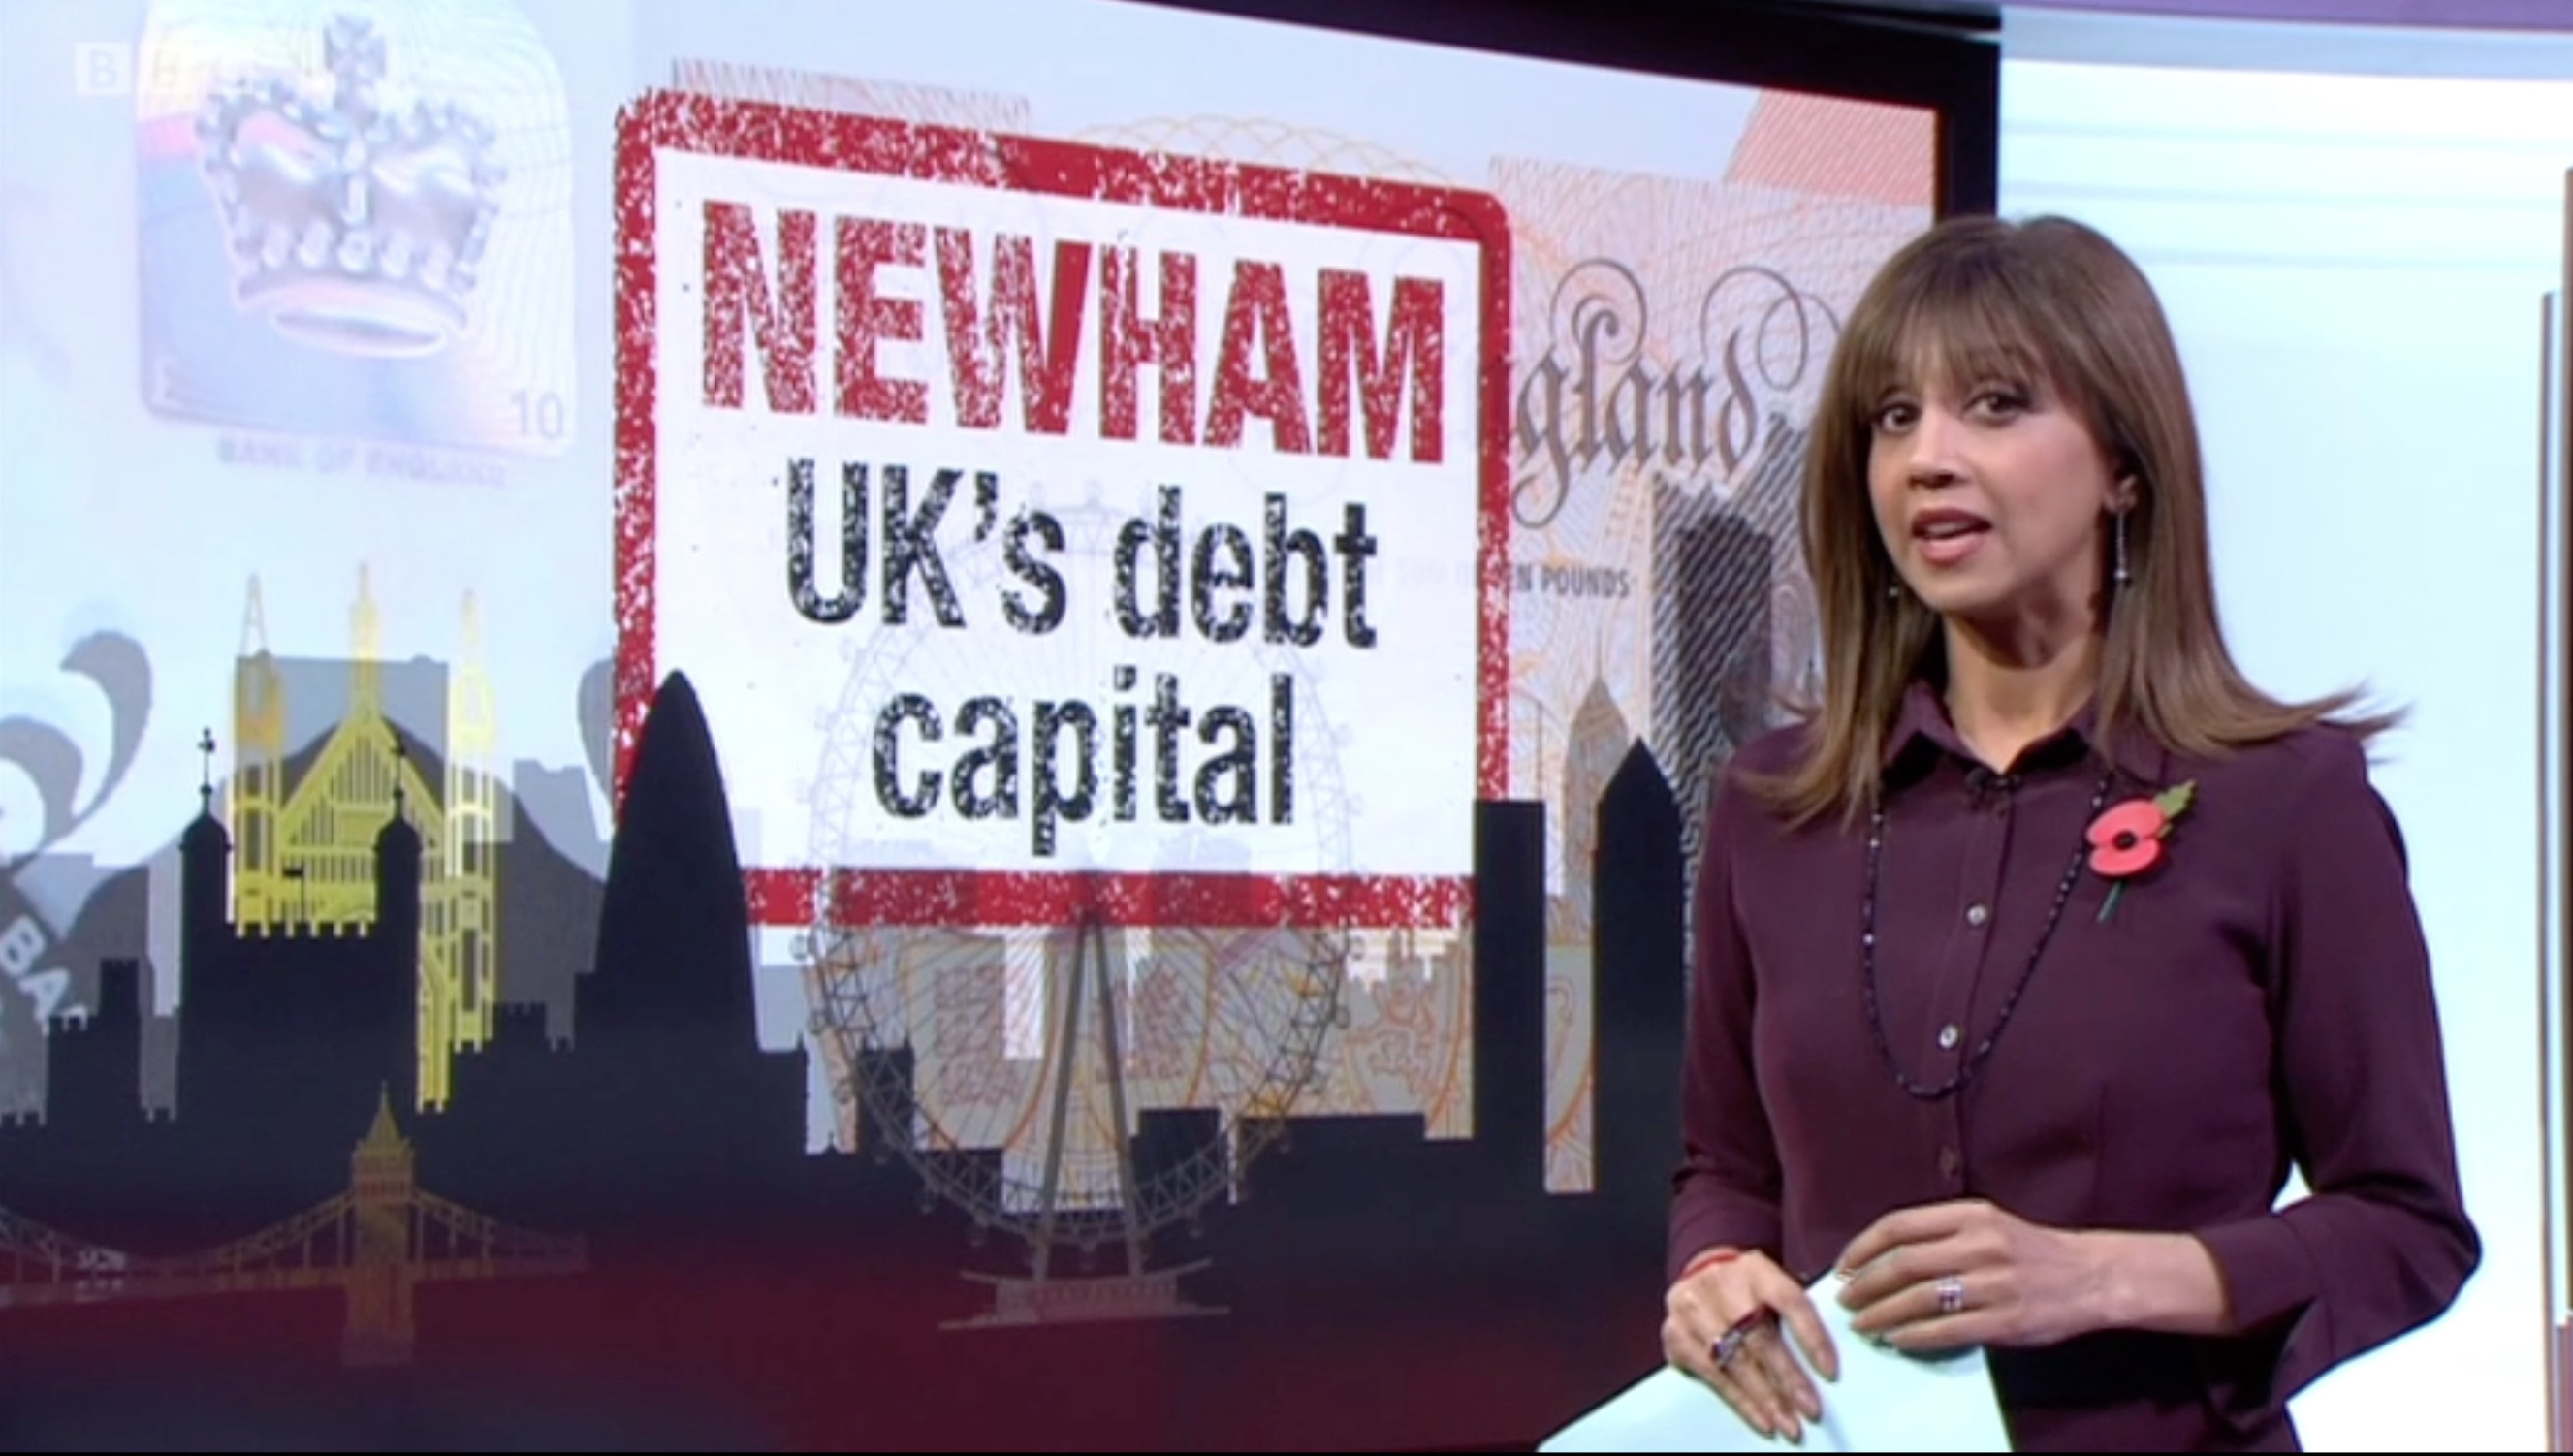 Newham UK Debt Capital